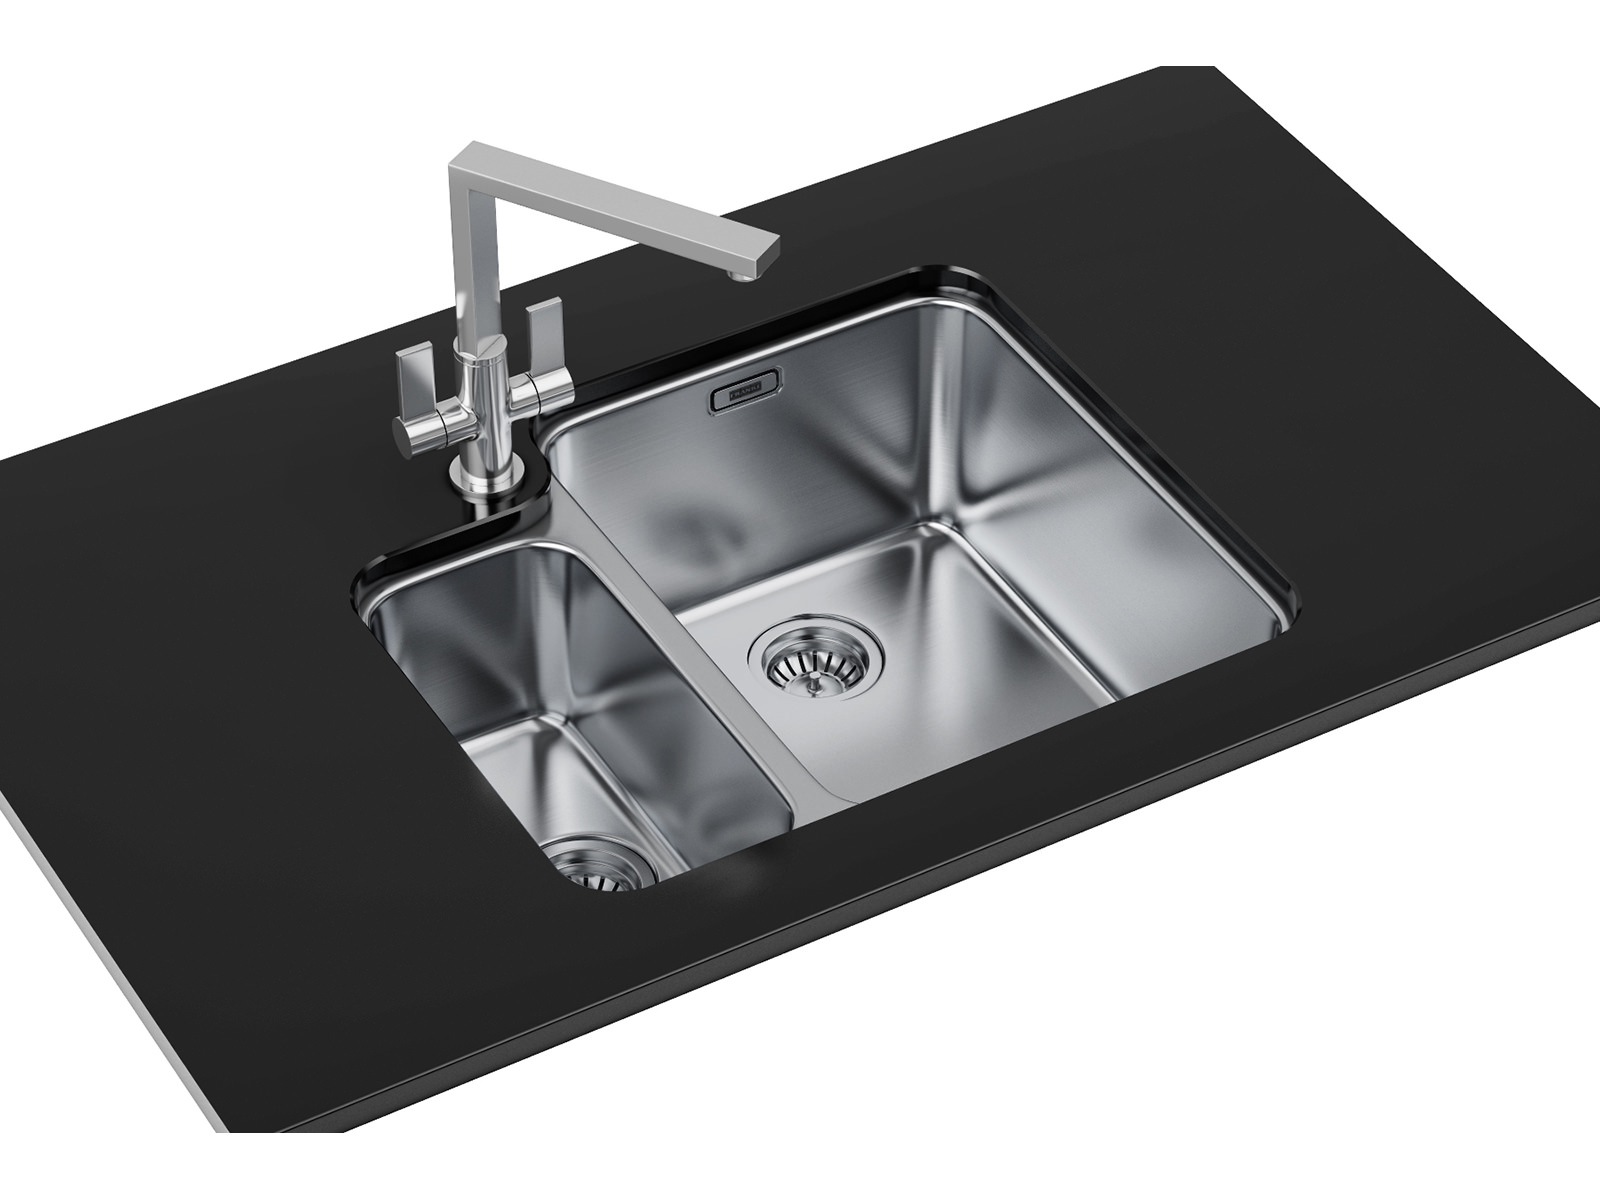 Franke hydros dp hdx 160 34 15 stainless steel sink and for Designer stainless steel sinks